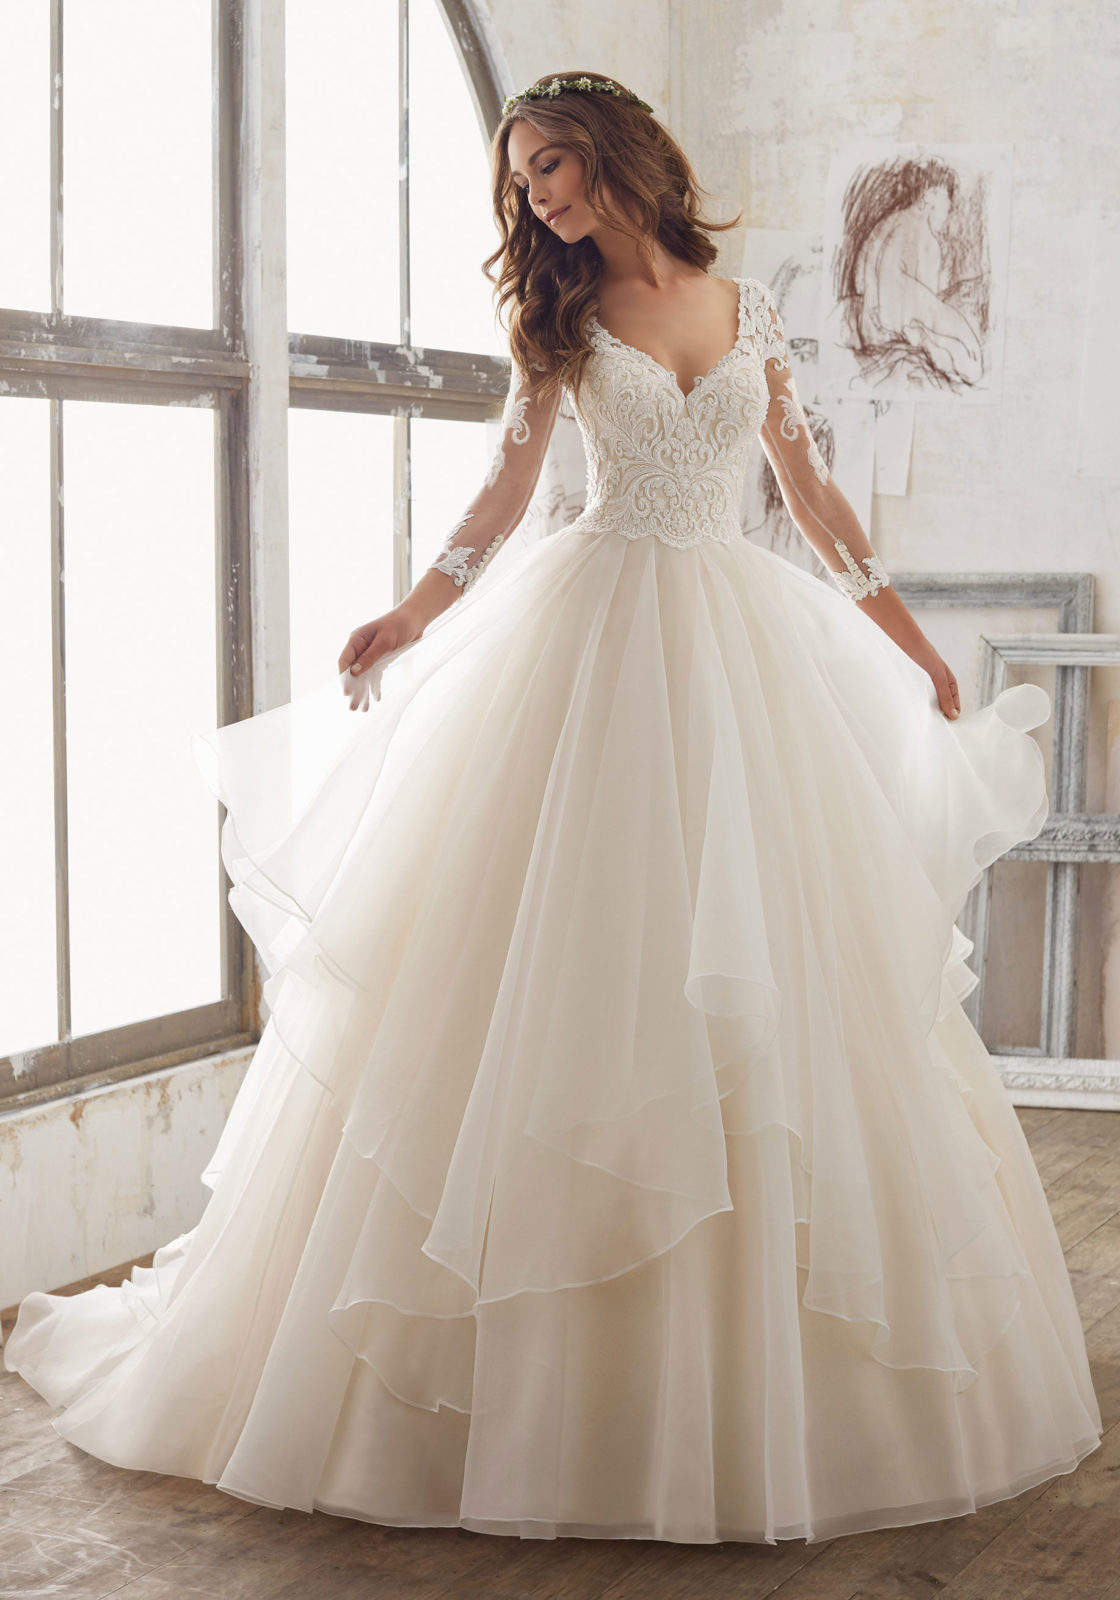 Morilee 5517 - Concepcion Bridal & Quinceañera Boutique